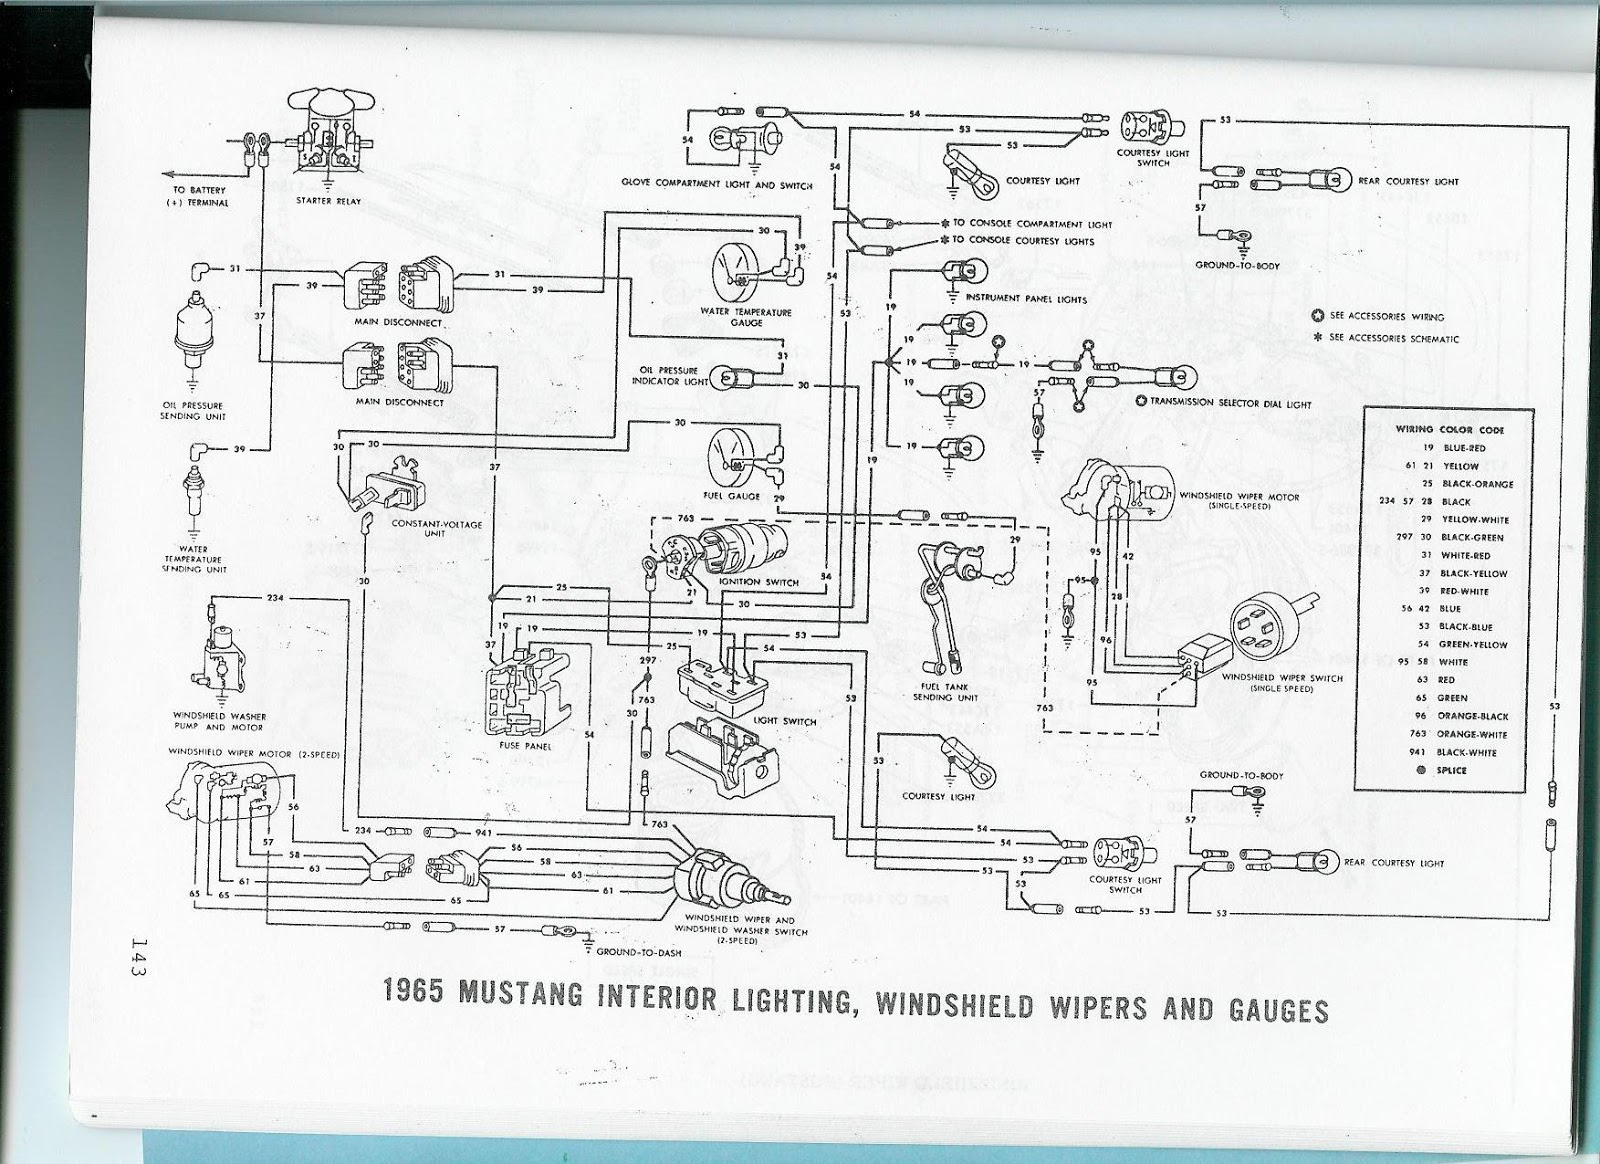 1965 mustang wiring diagram online schematic diagram u2022 rh holyoak co 1965 Mustang Turn Signal Wiring Diagram 1965 Mustang Radio Wiring Diagram